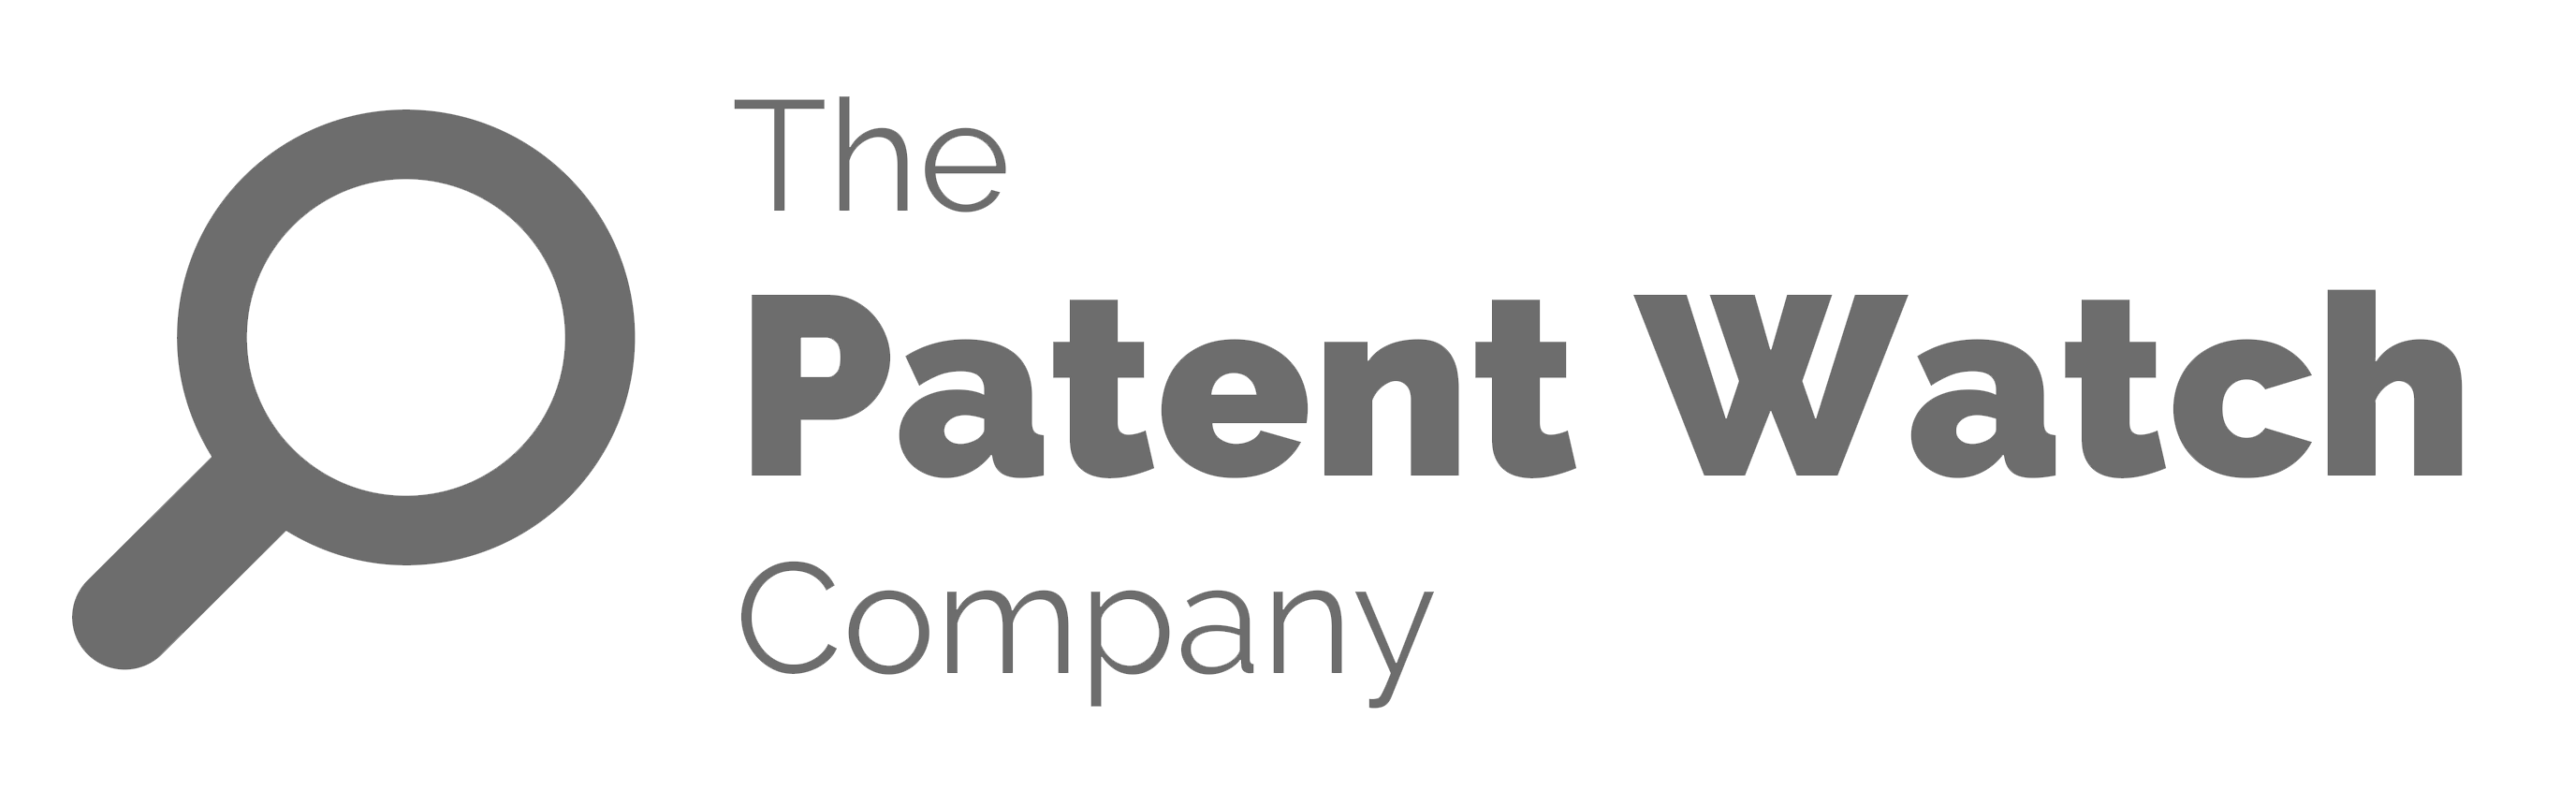 The Patent Watch Company